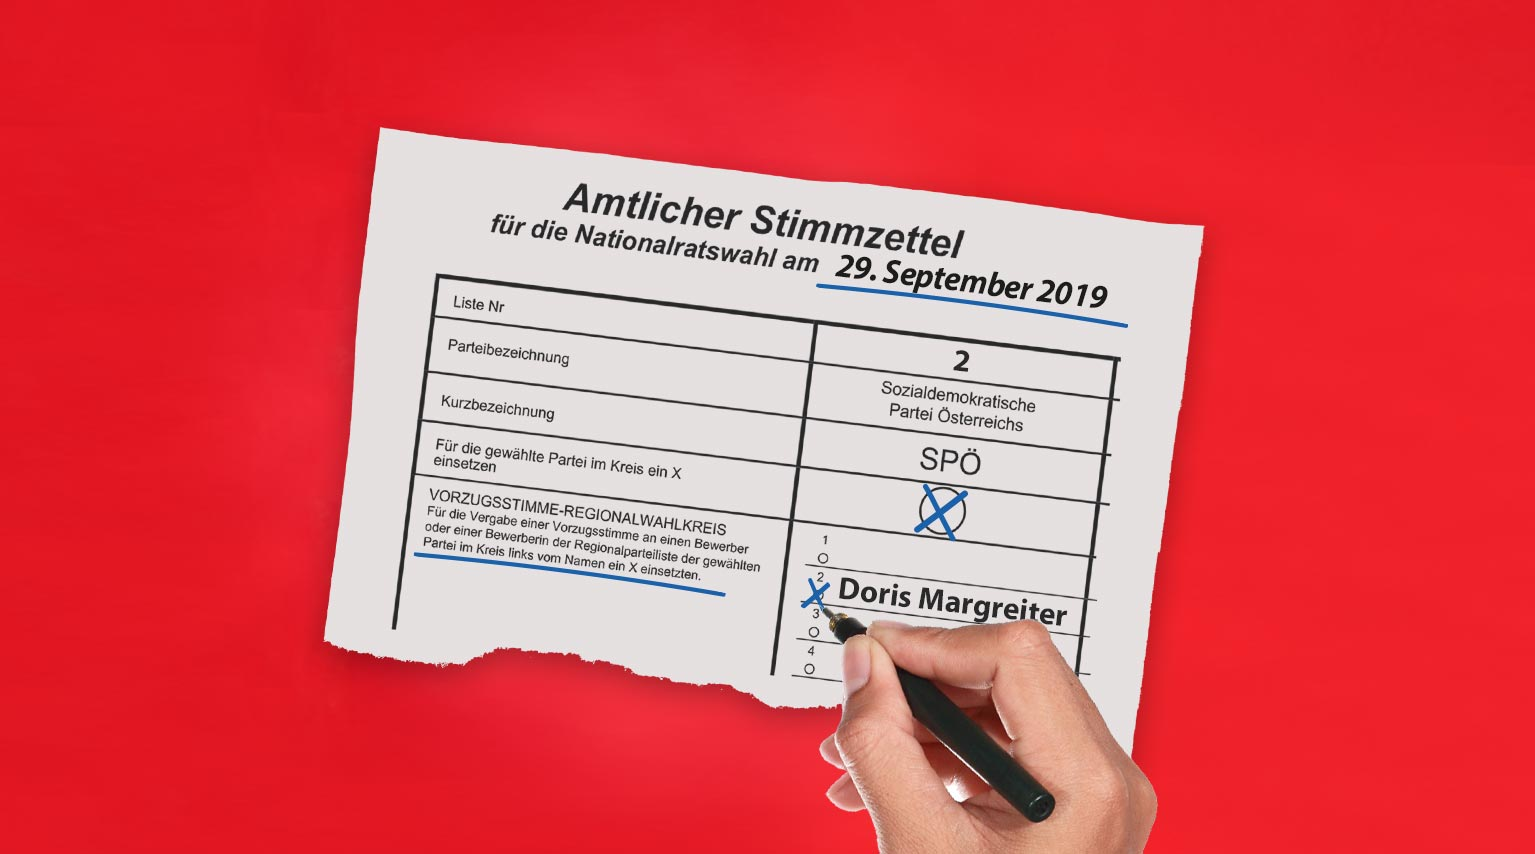 headerDoris-Margreiter-SPÖ-Nationalratswahl-2019-Wahl